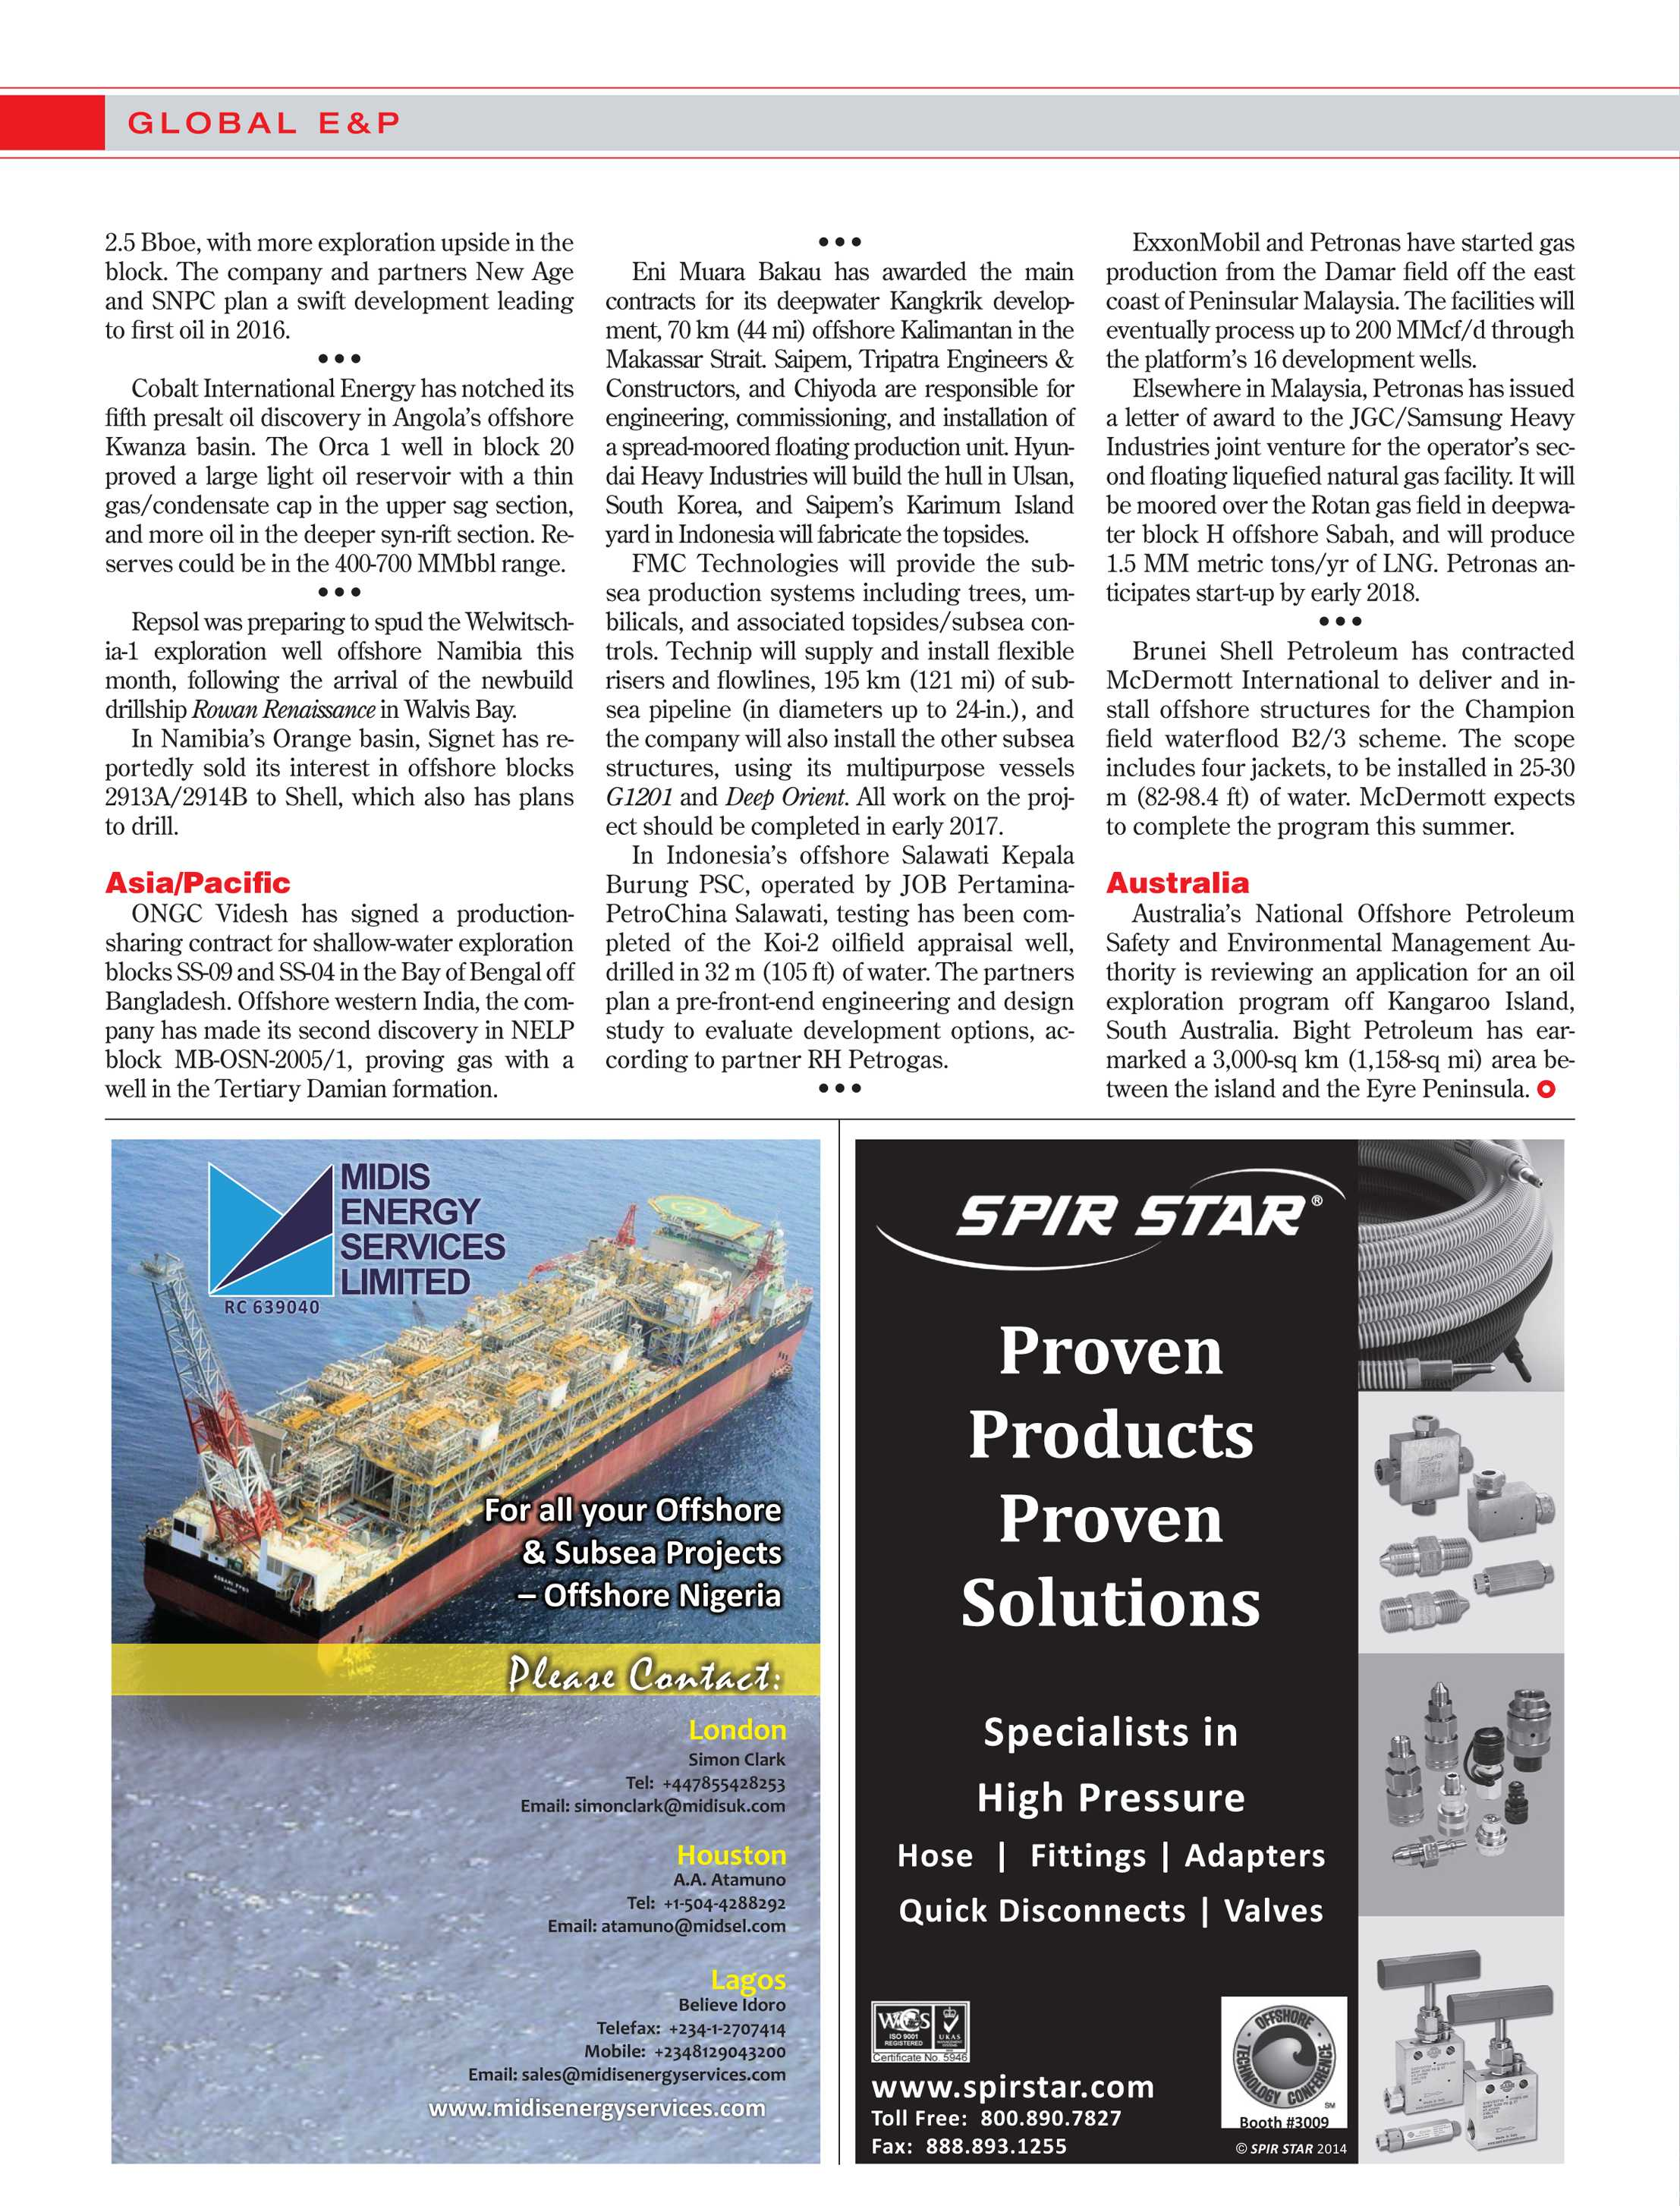 Offshore Magazine - April 2014 - page 18